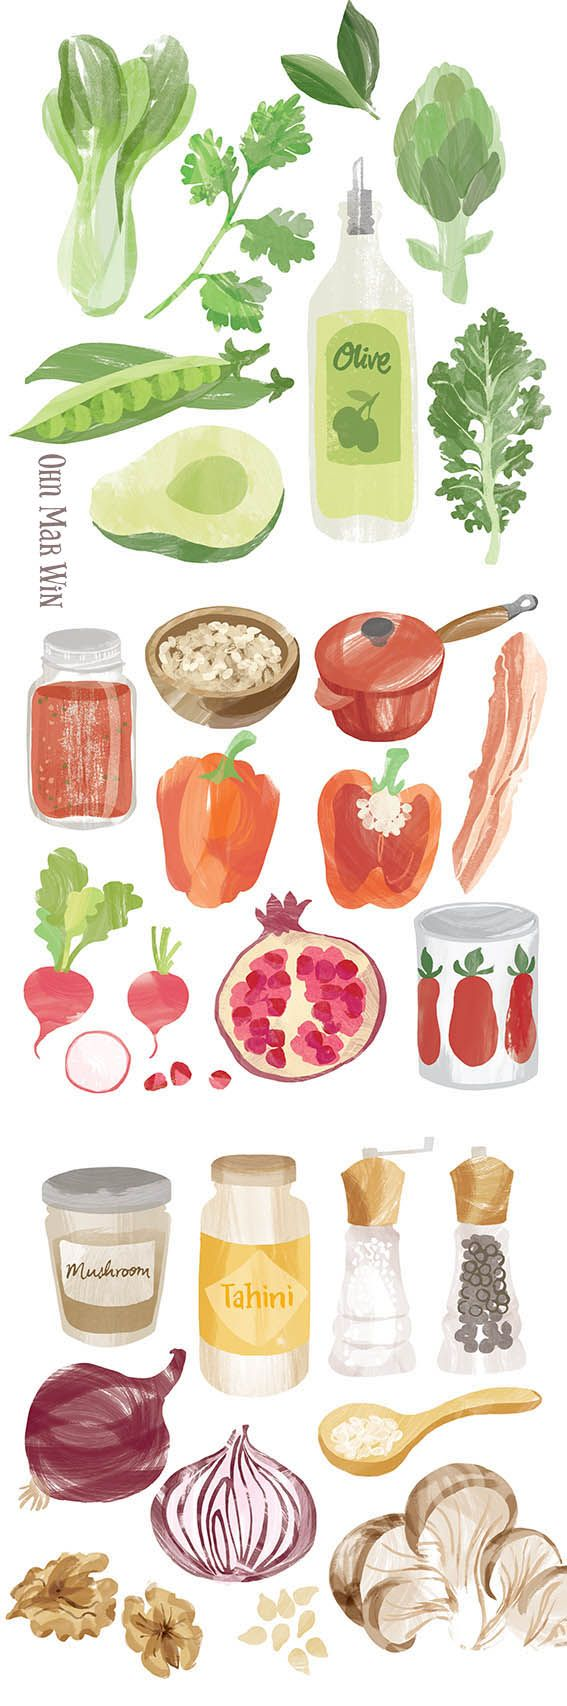 I am delighted to announce the launch of a great healthy eating cook book  by Summer Rayne Oakes titled SugarDetoxMe printed by Sterling Publishing.  Below Summer has kindly provided a basic outline of the process for  sourcing illustration for her book, some of her requirements, and  concepts: